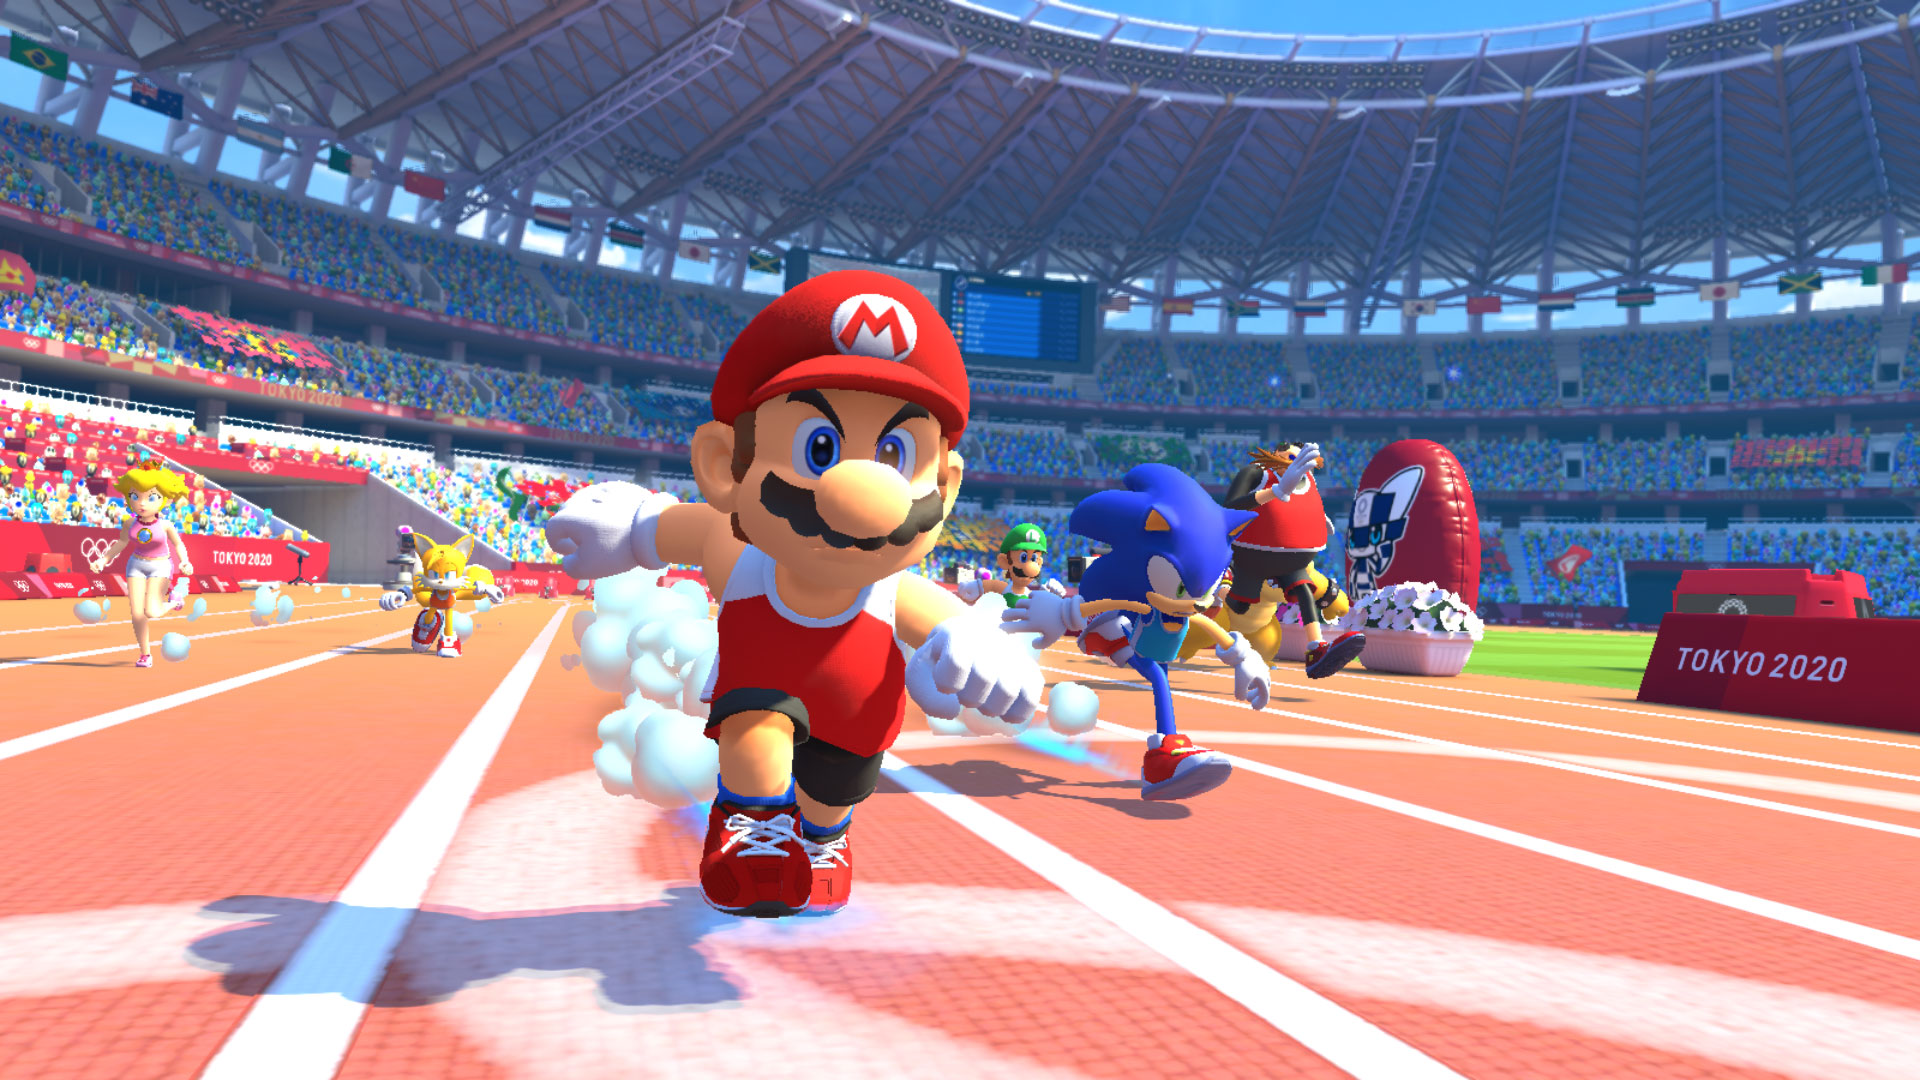 Mario-and-Sonic-at-the-Olympic-Games-Tokyo-2020_03-30-19_002.jpg